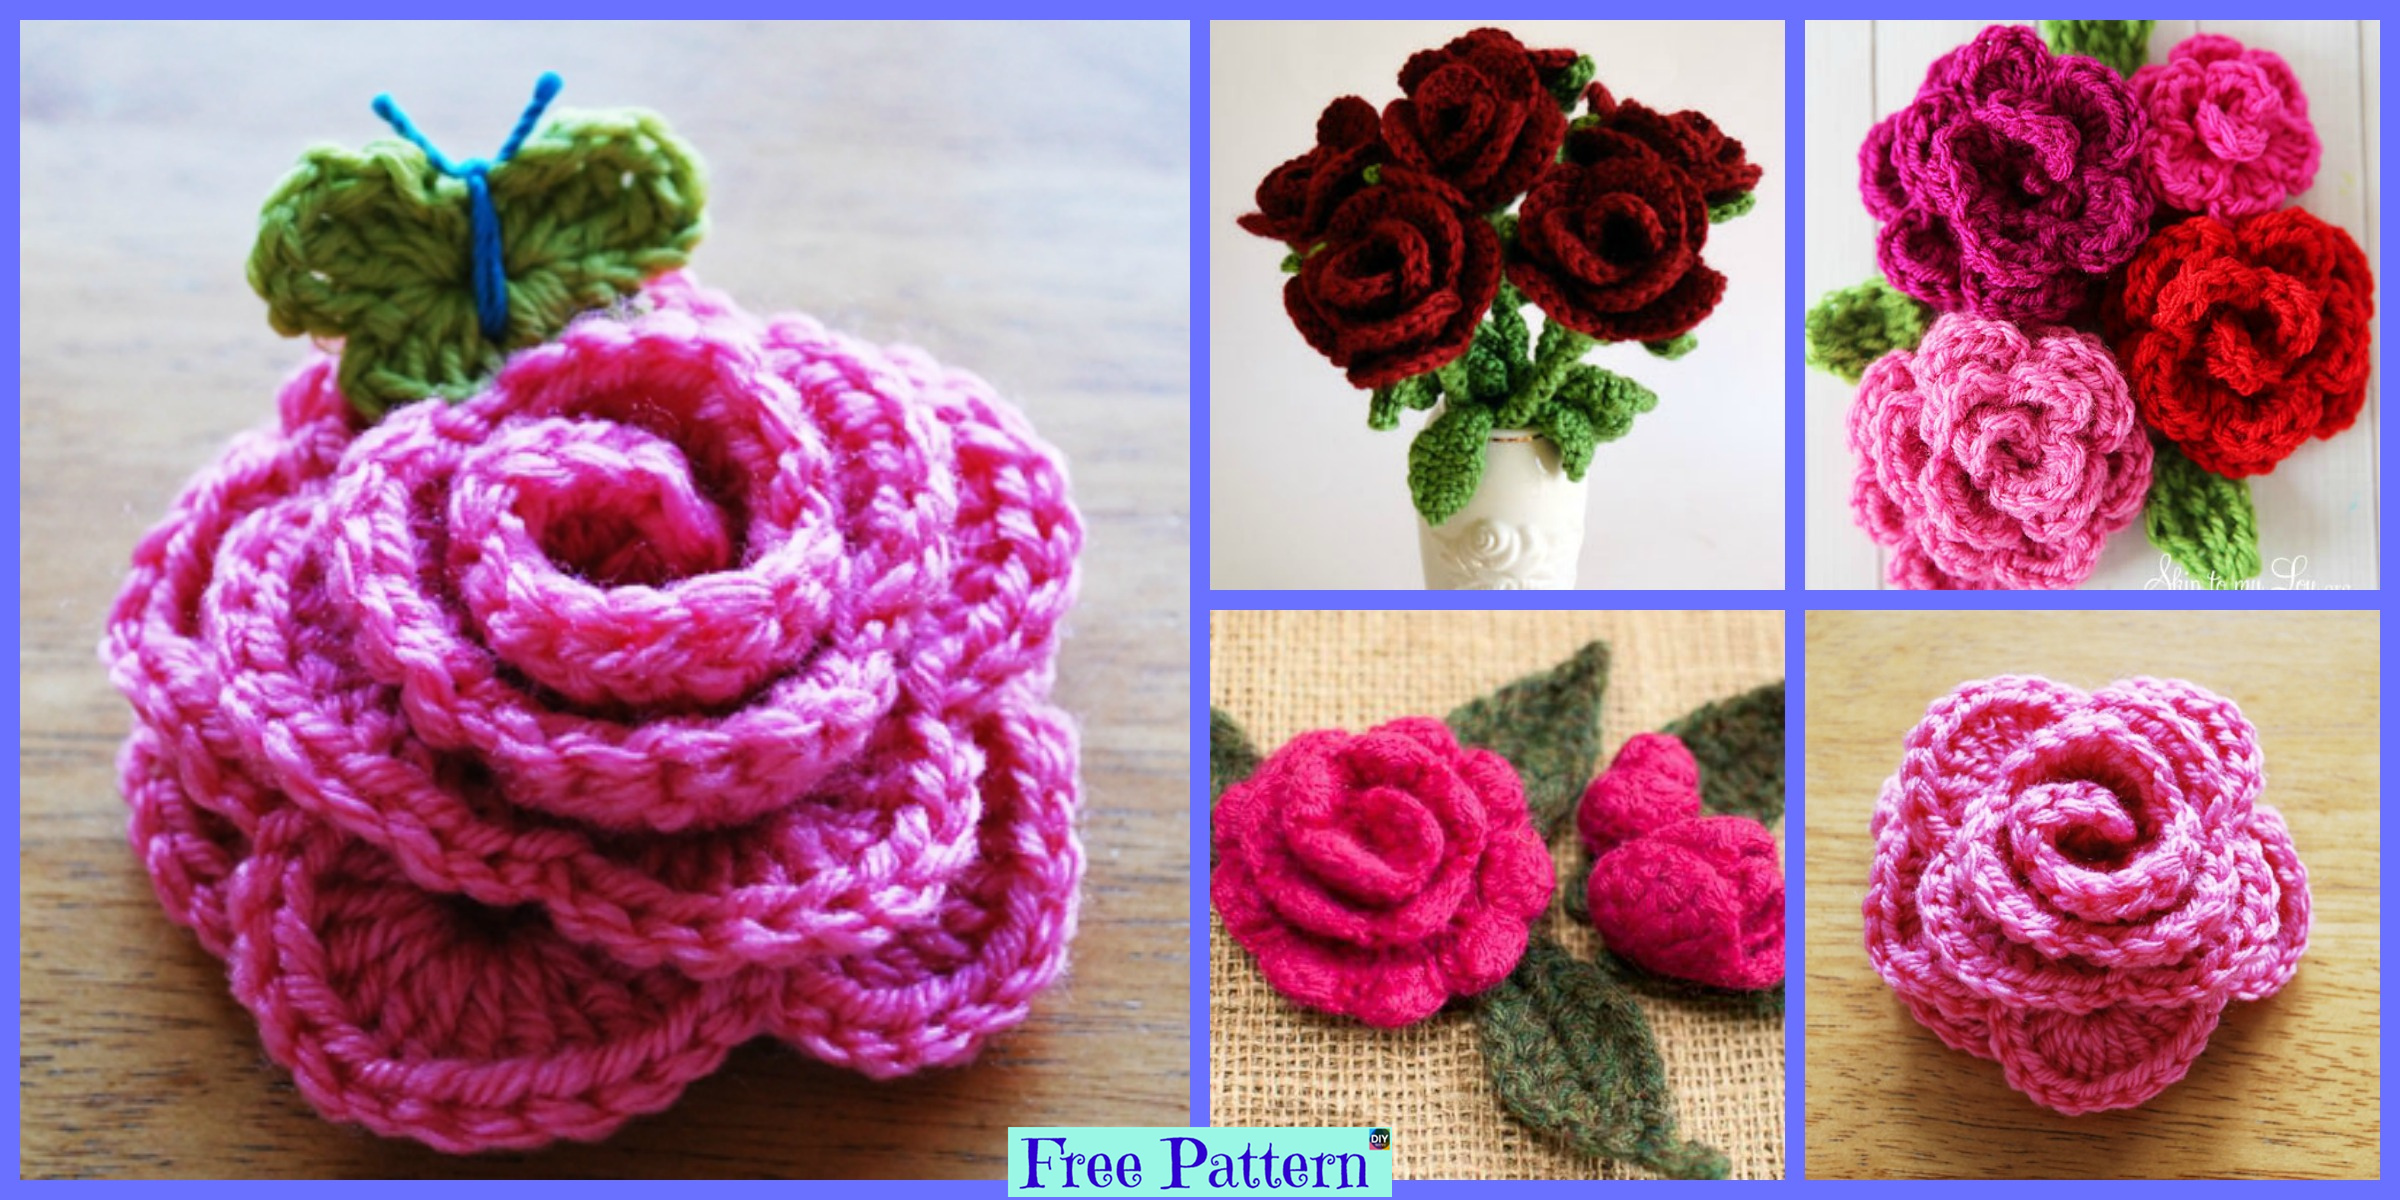 Crochet Rose Flowers – Free Patterns